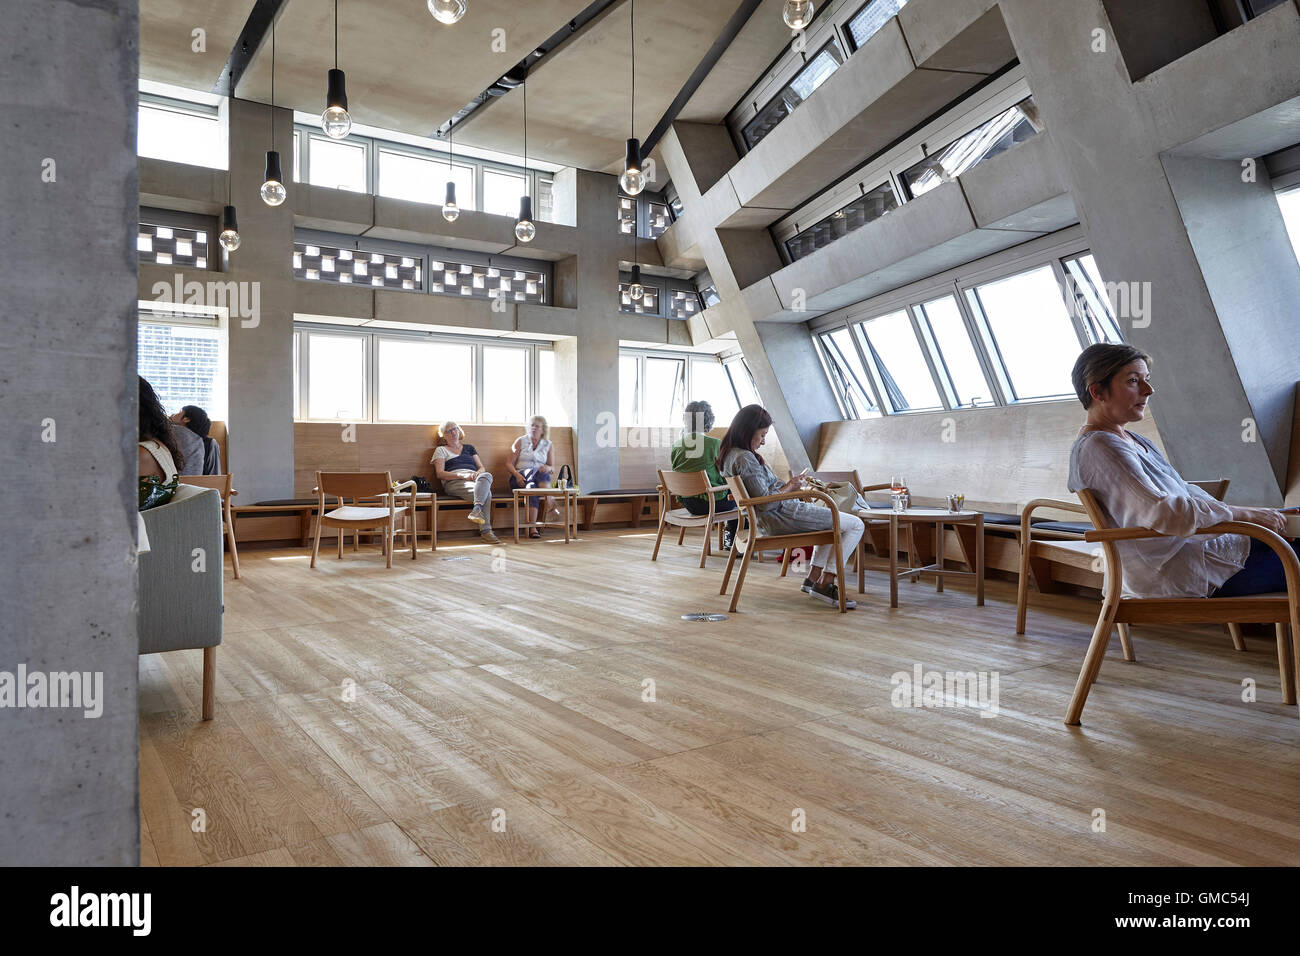 People relaxing in the cafe canteen area switch house at tate modern london united kingdom architect herzog de meuron 2016